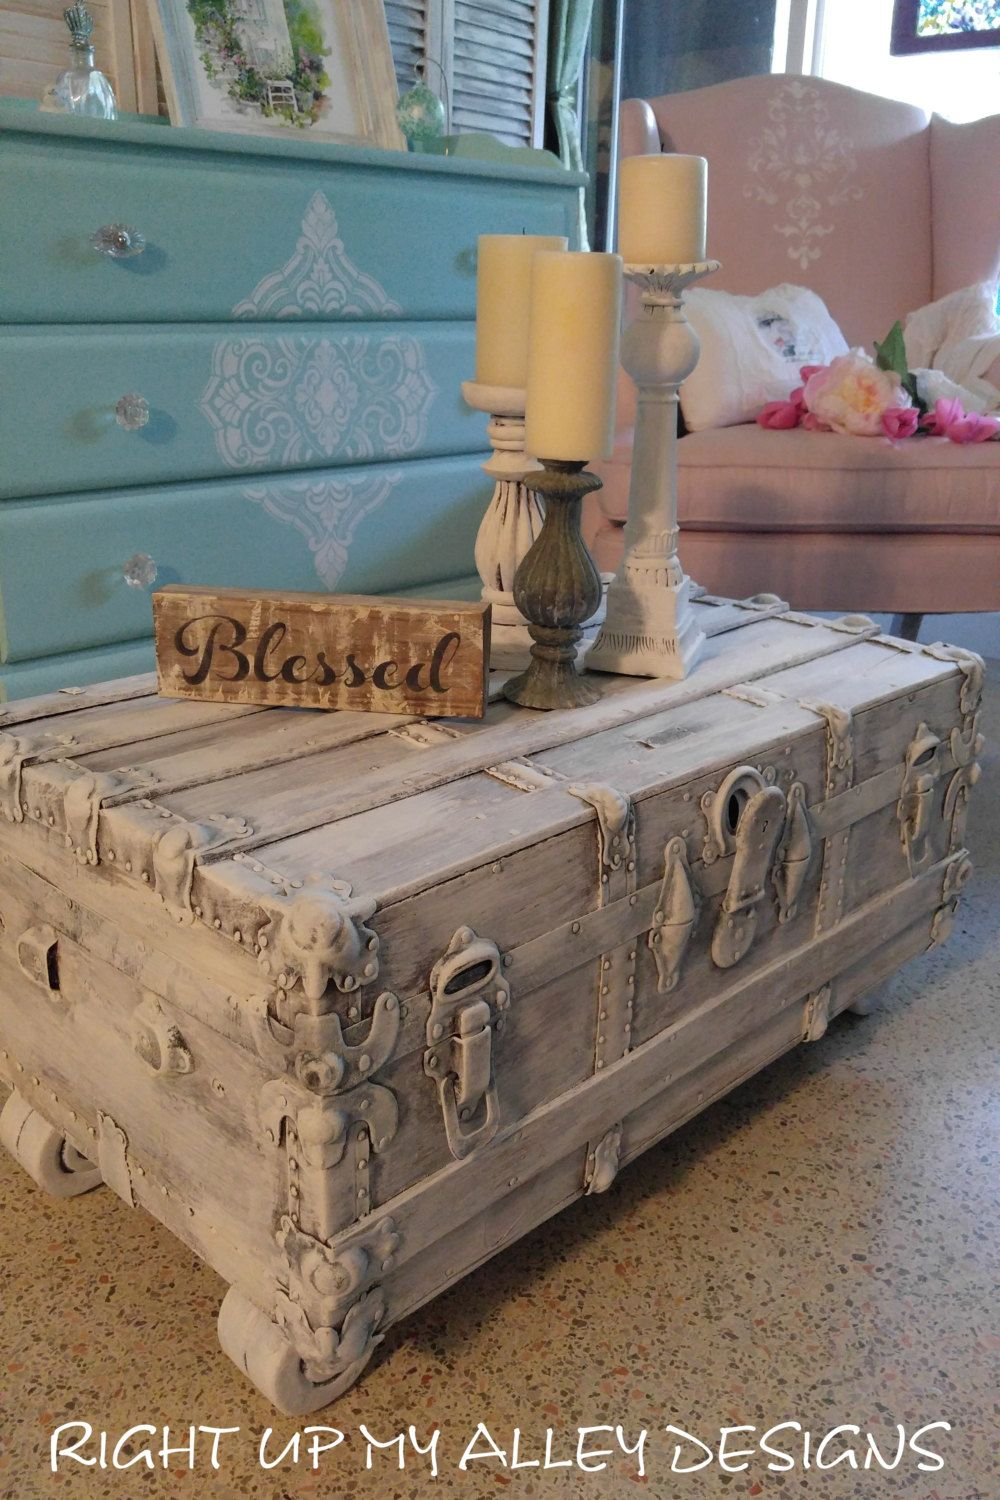 Old vintage trunkTrunk Coffee TableShabby Chic TrunkFlat steamer TrunkStorage trunkShabby Chic Trunk with feetwhite distressed trunk by ... & Old vintage trunkTrunk Coffee TableShabby Chic TrunkFlat steamer ...